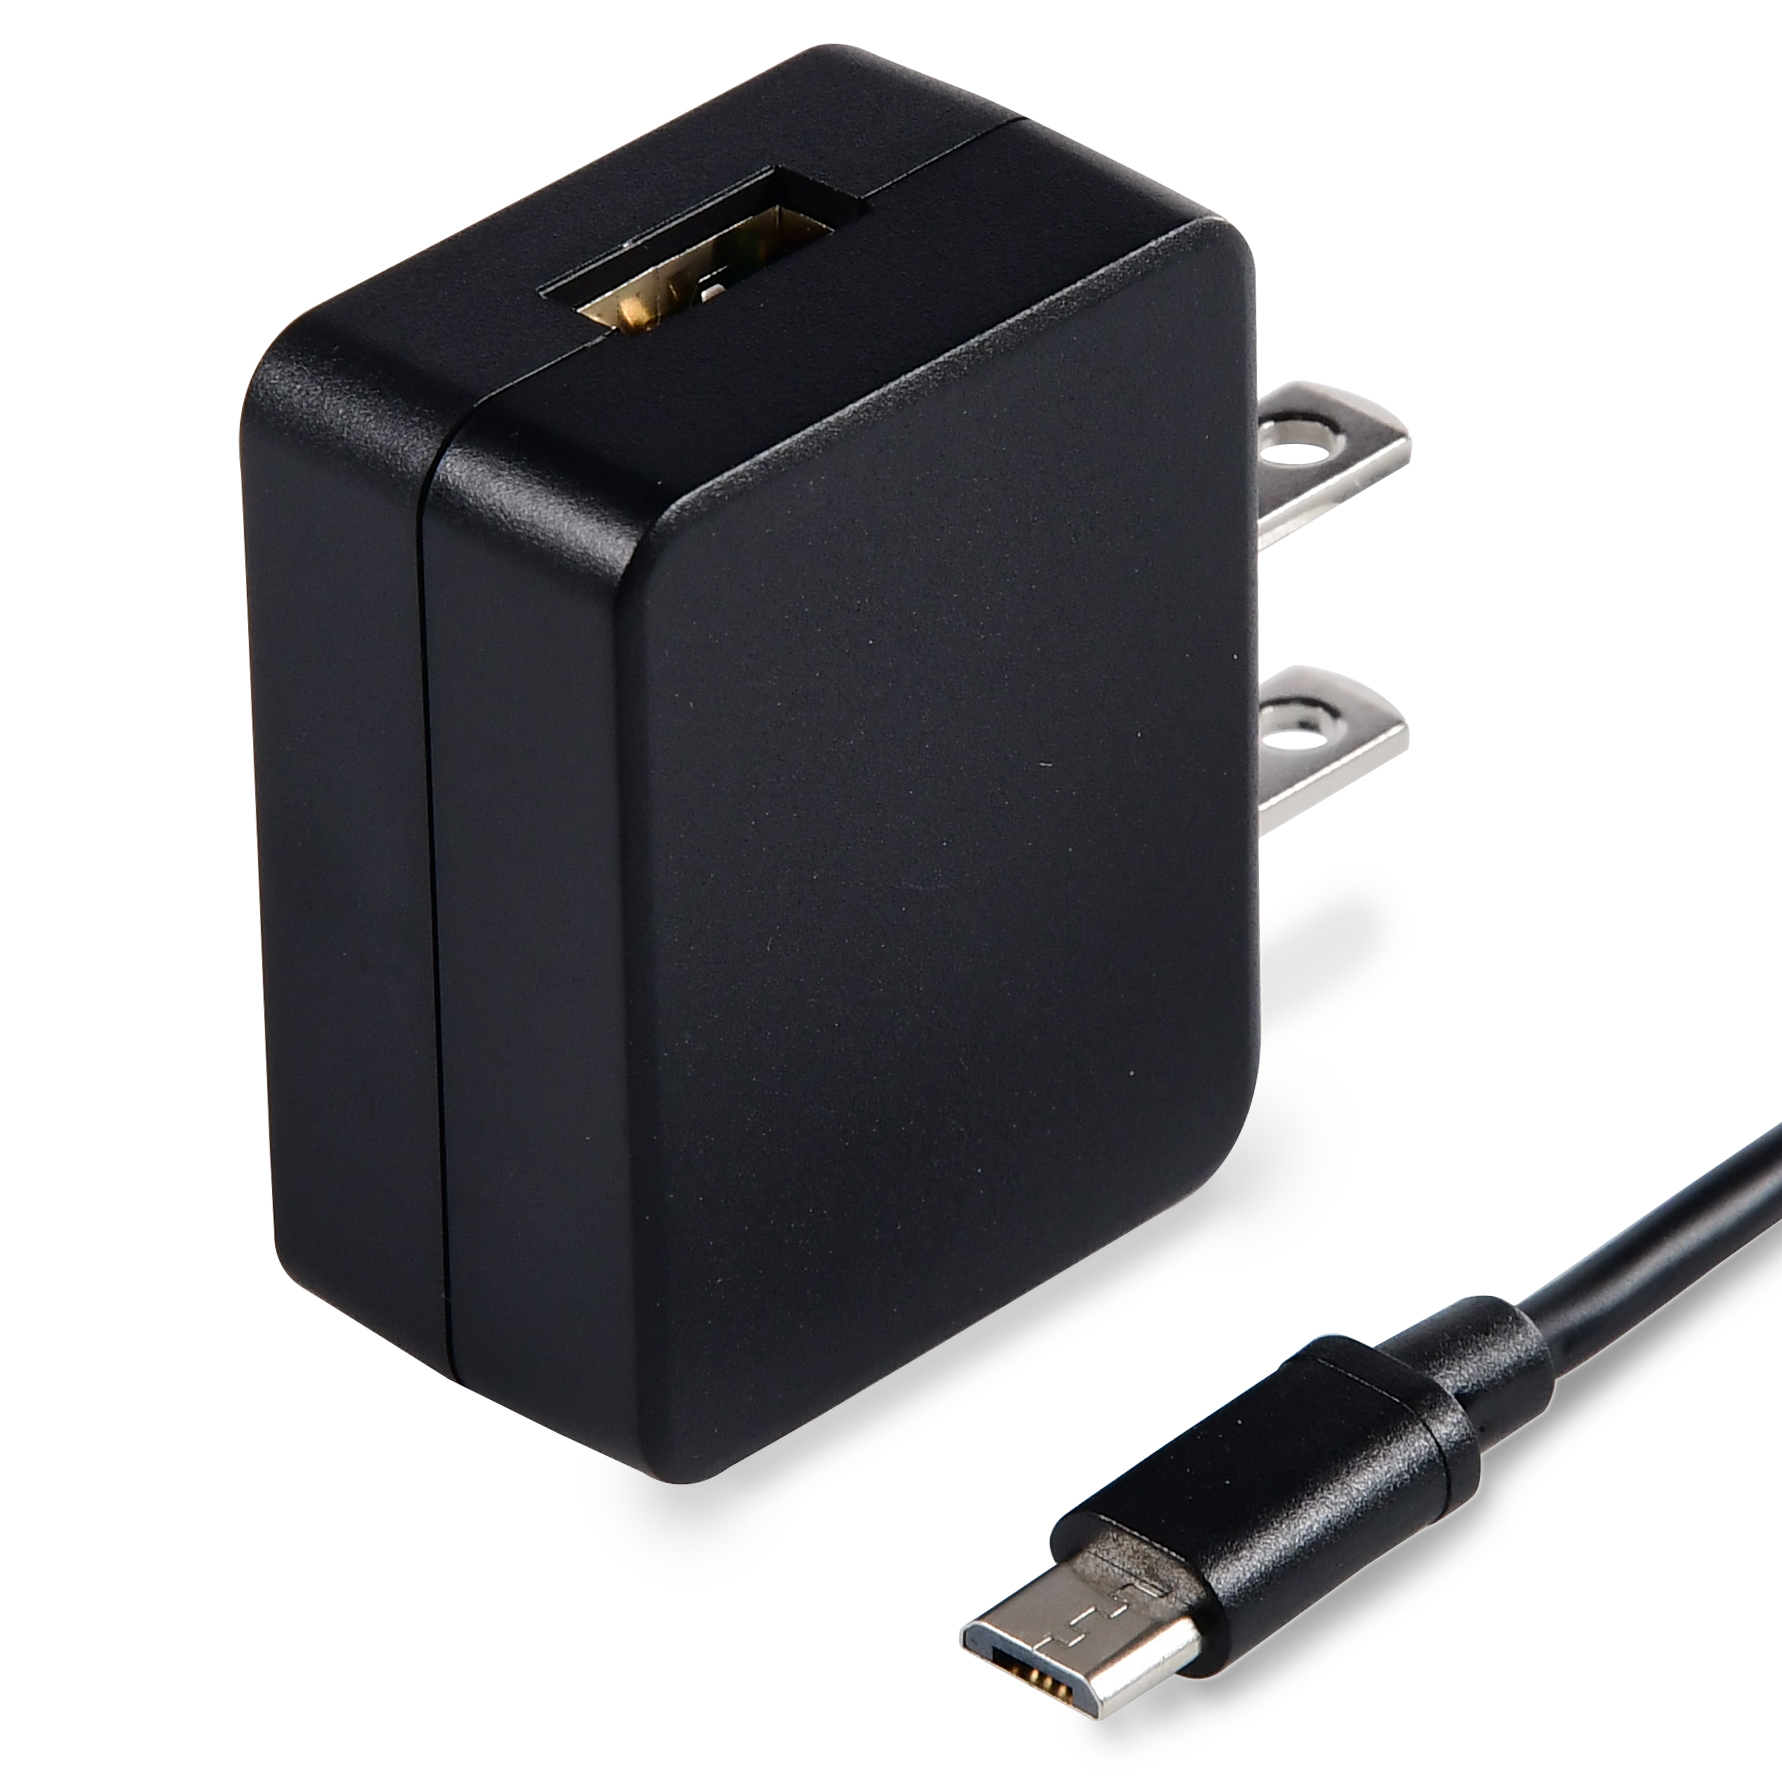 ONN Wall Charger 2.1A with 3ft Micro USB Cable, Black